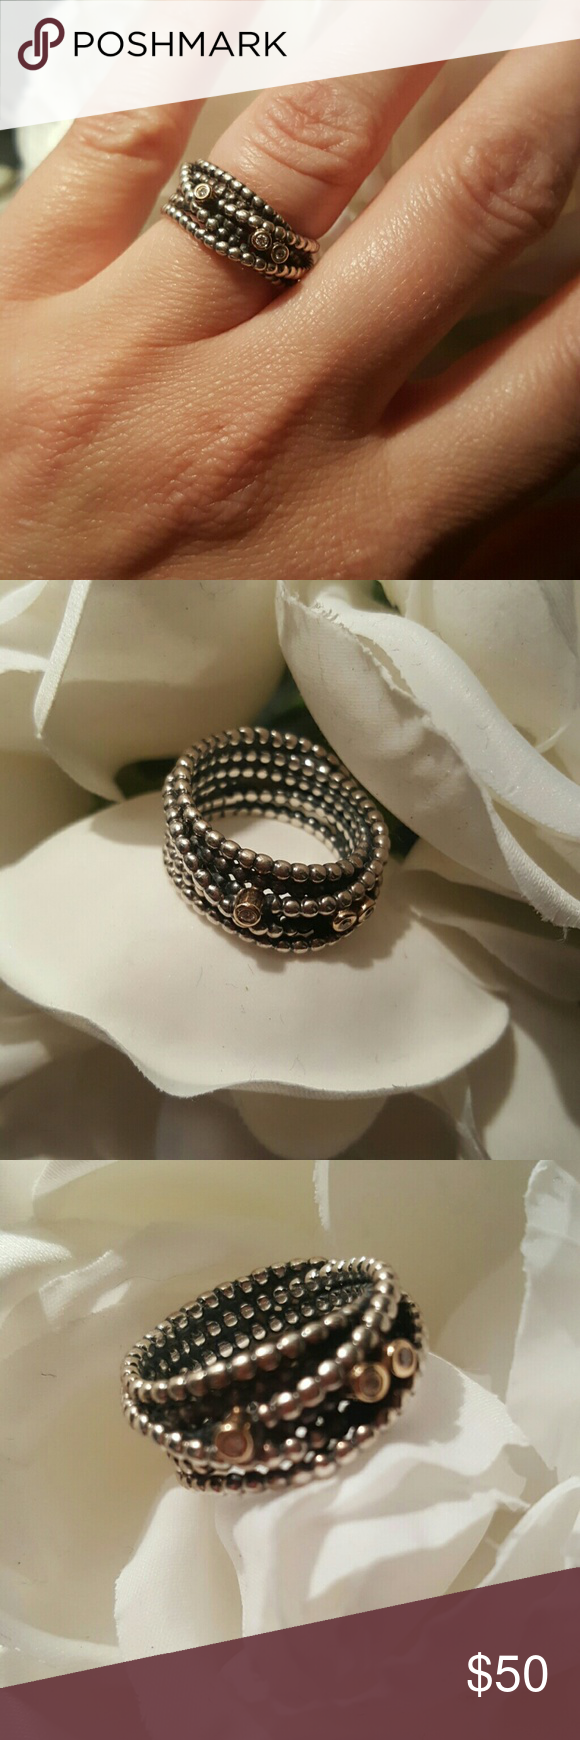 Pandora Ring Silver wrap-look ring with 14k gold and cubic zirconia accents. Eye candy for your hand! Pandora Jewelry Rings